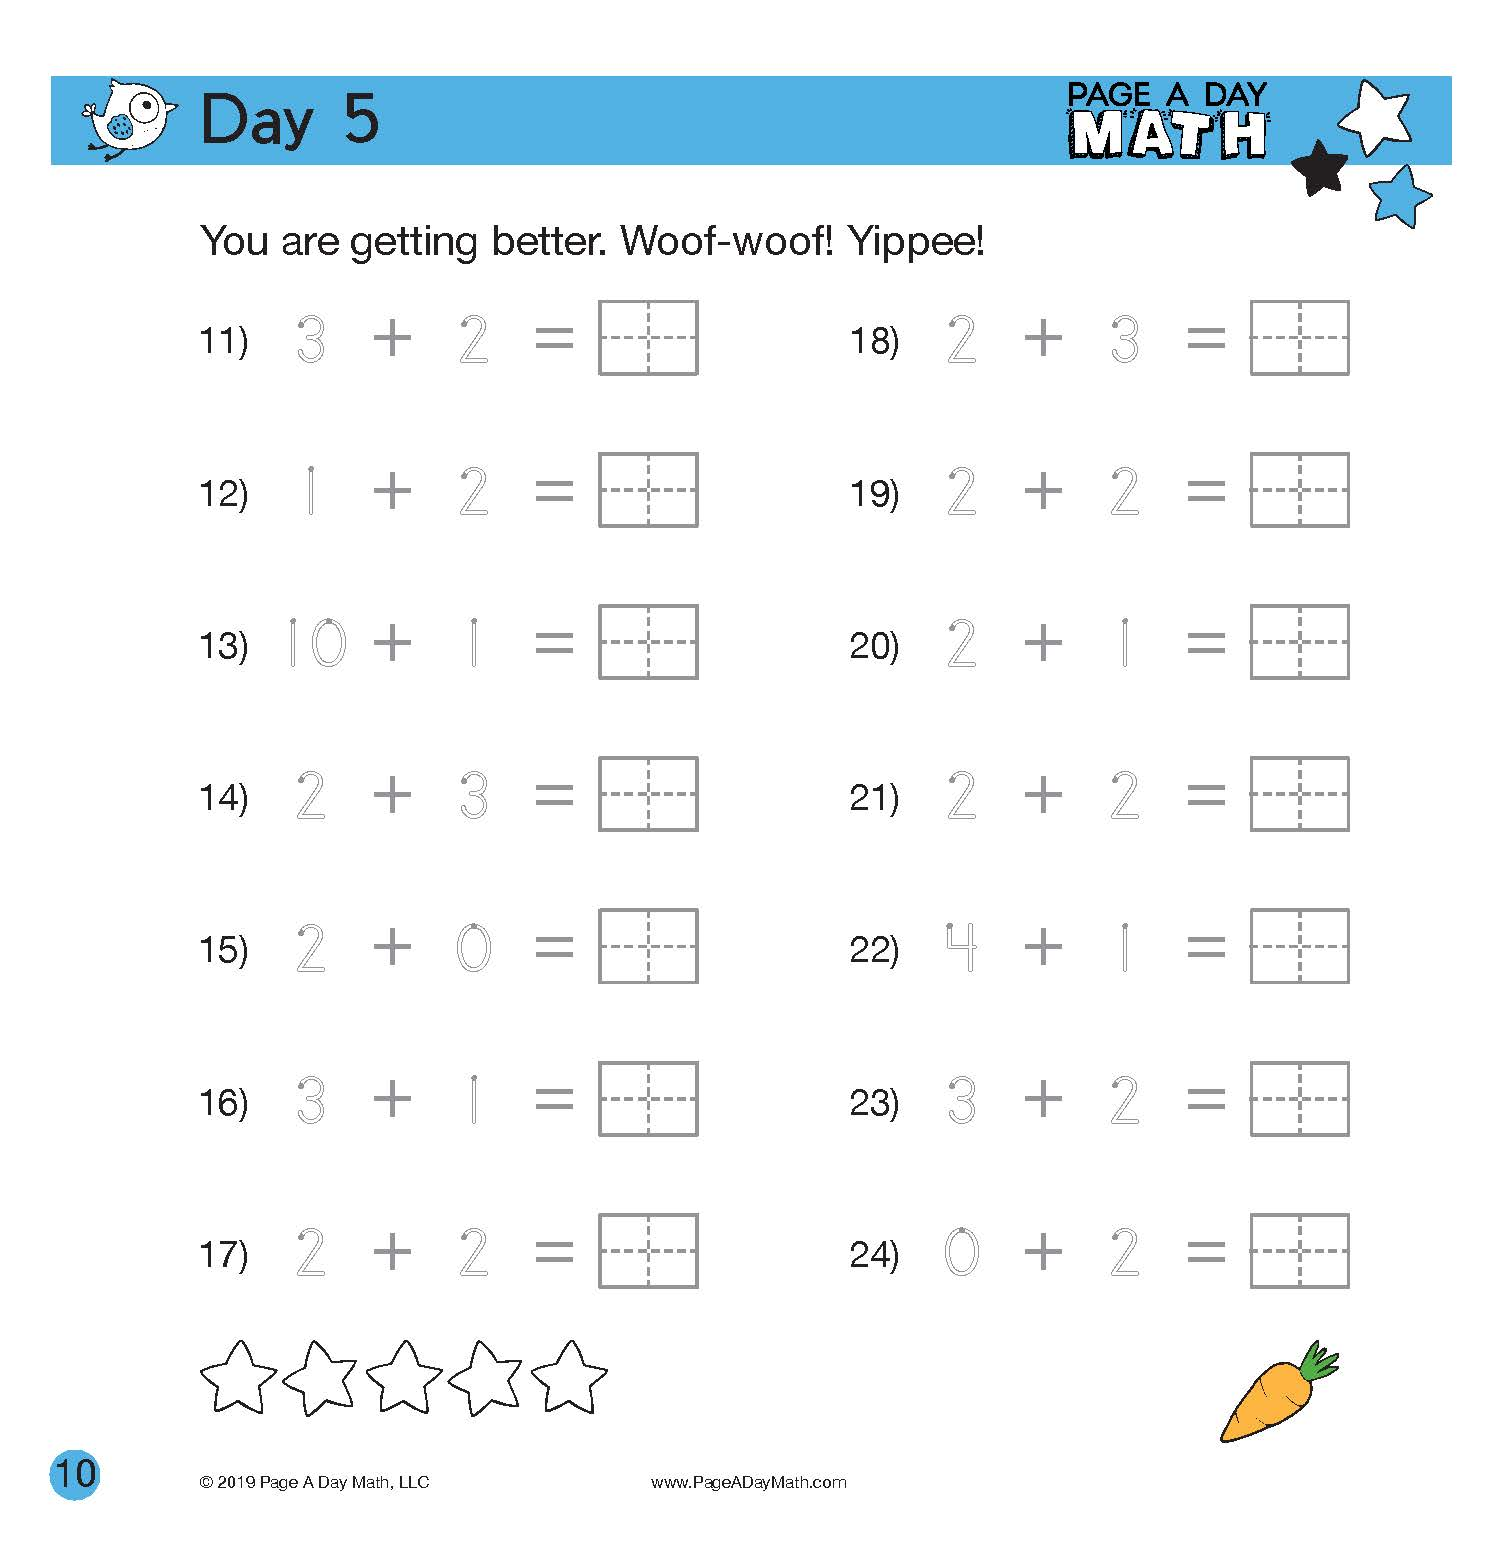 Daily Math Reinforcement With Page A Day Math